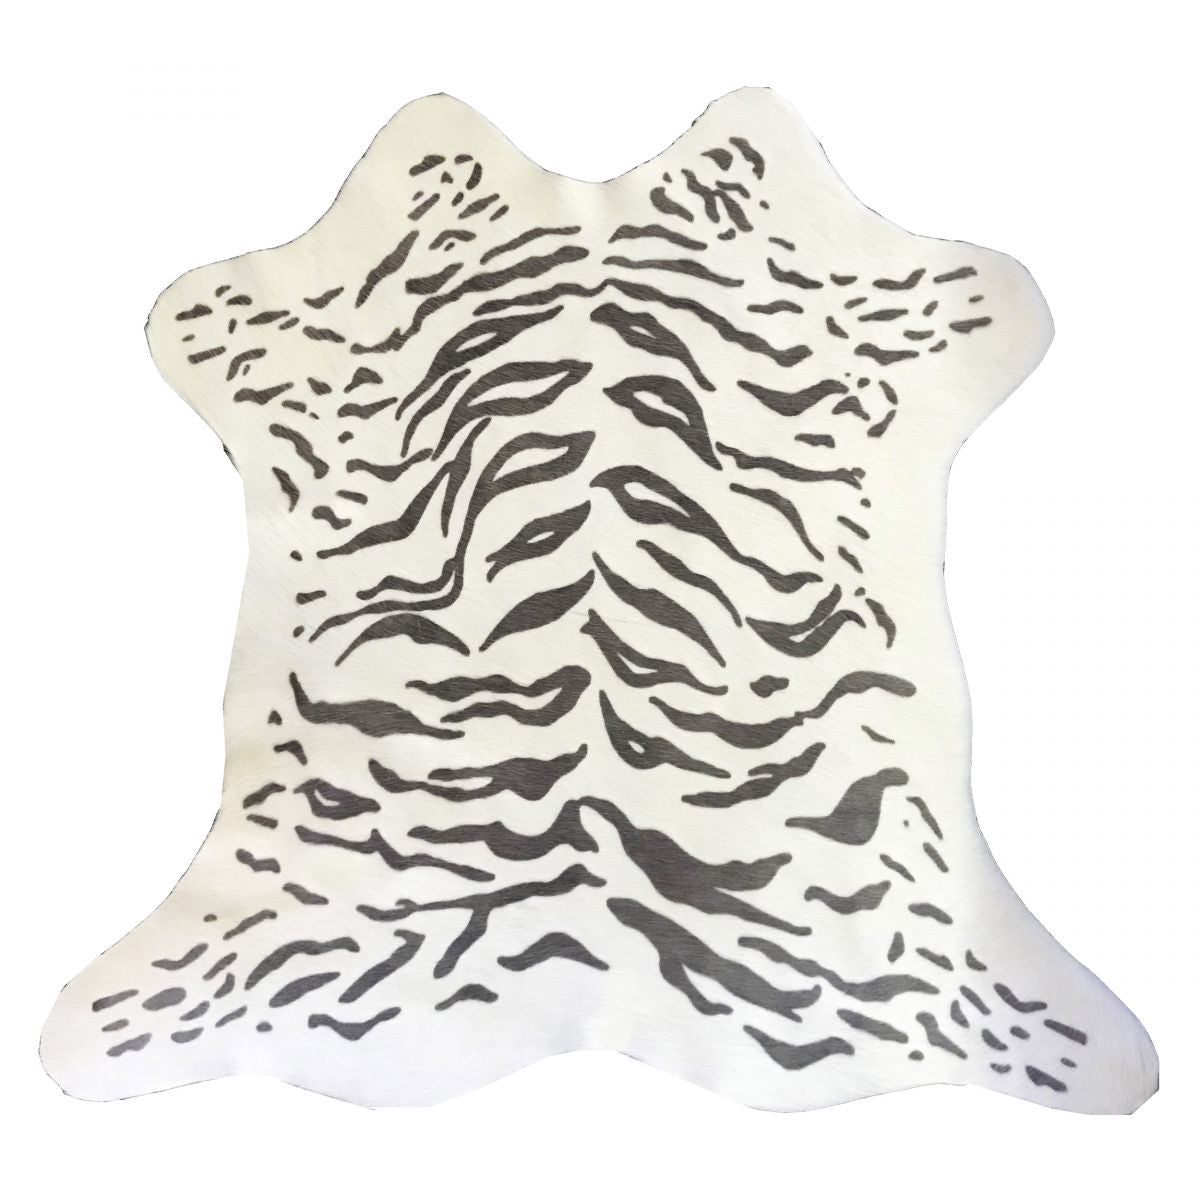 Hair-On Calfskin Print Grey Tiger